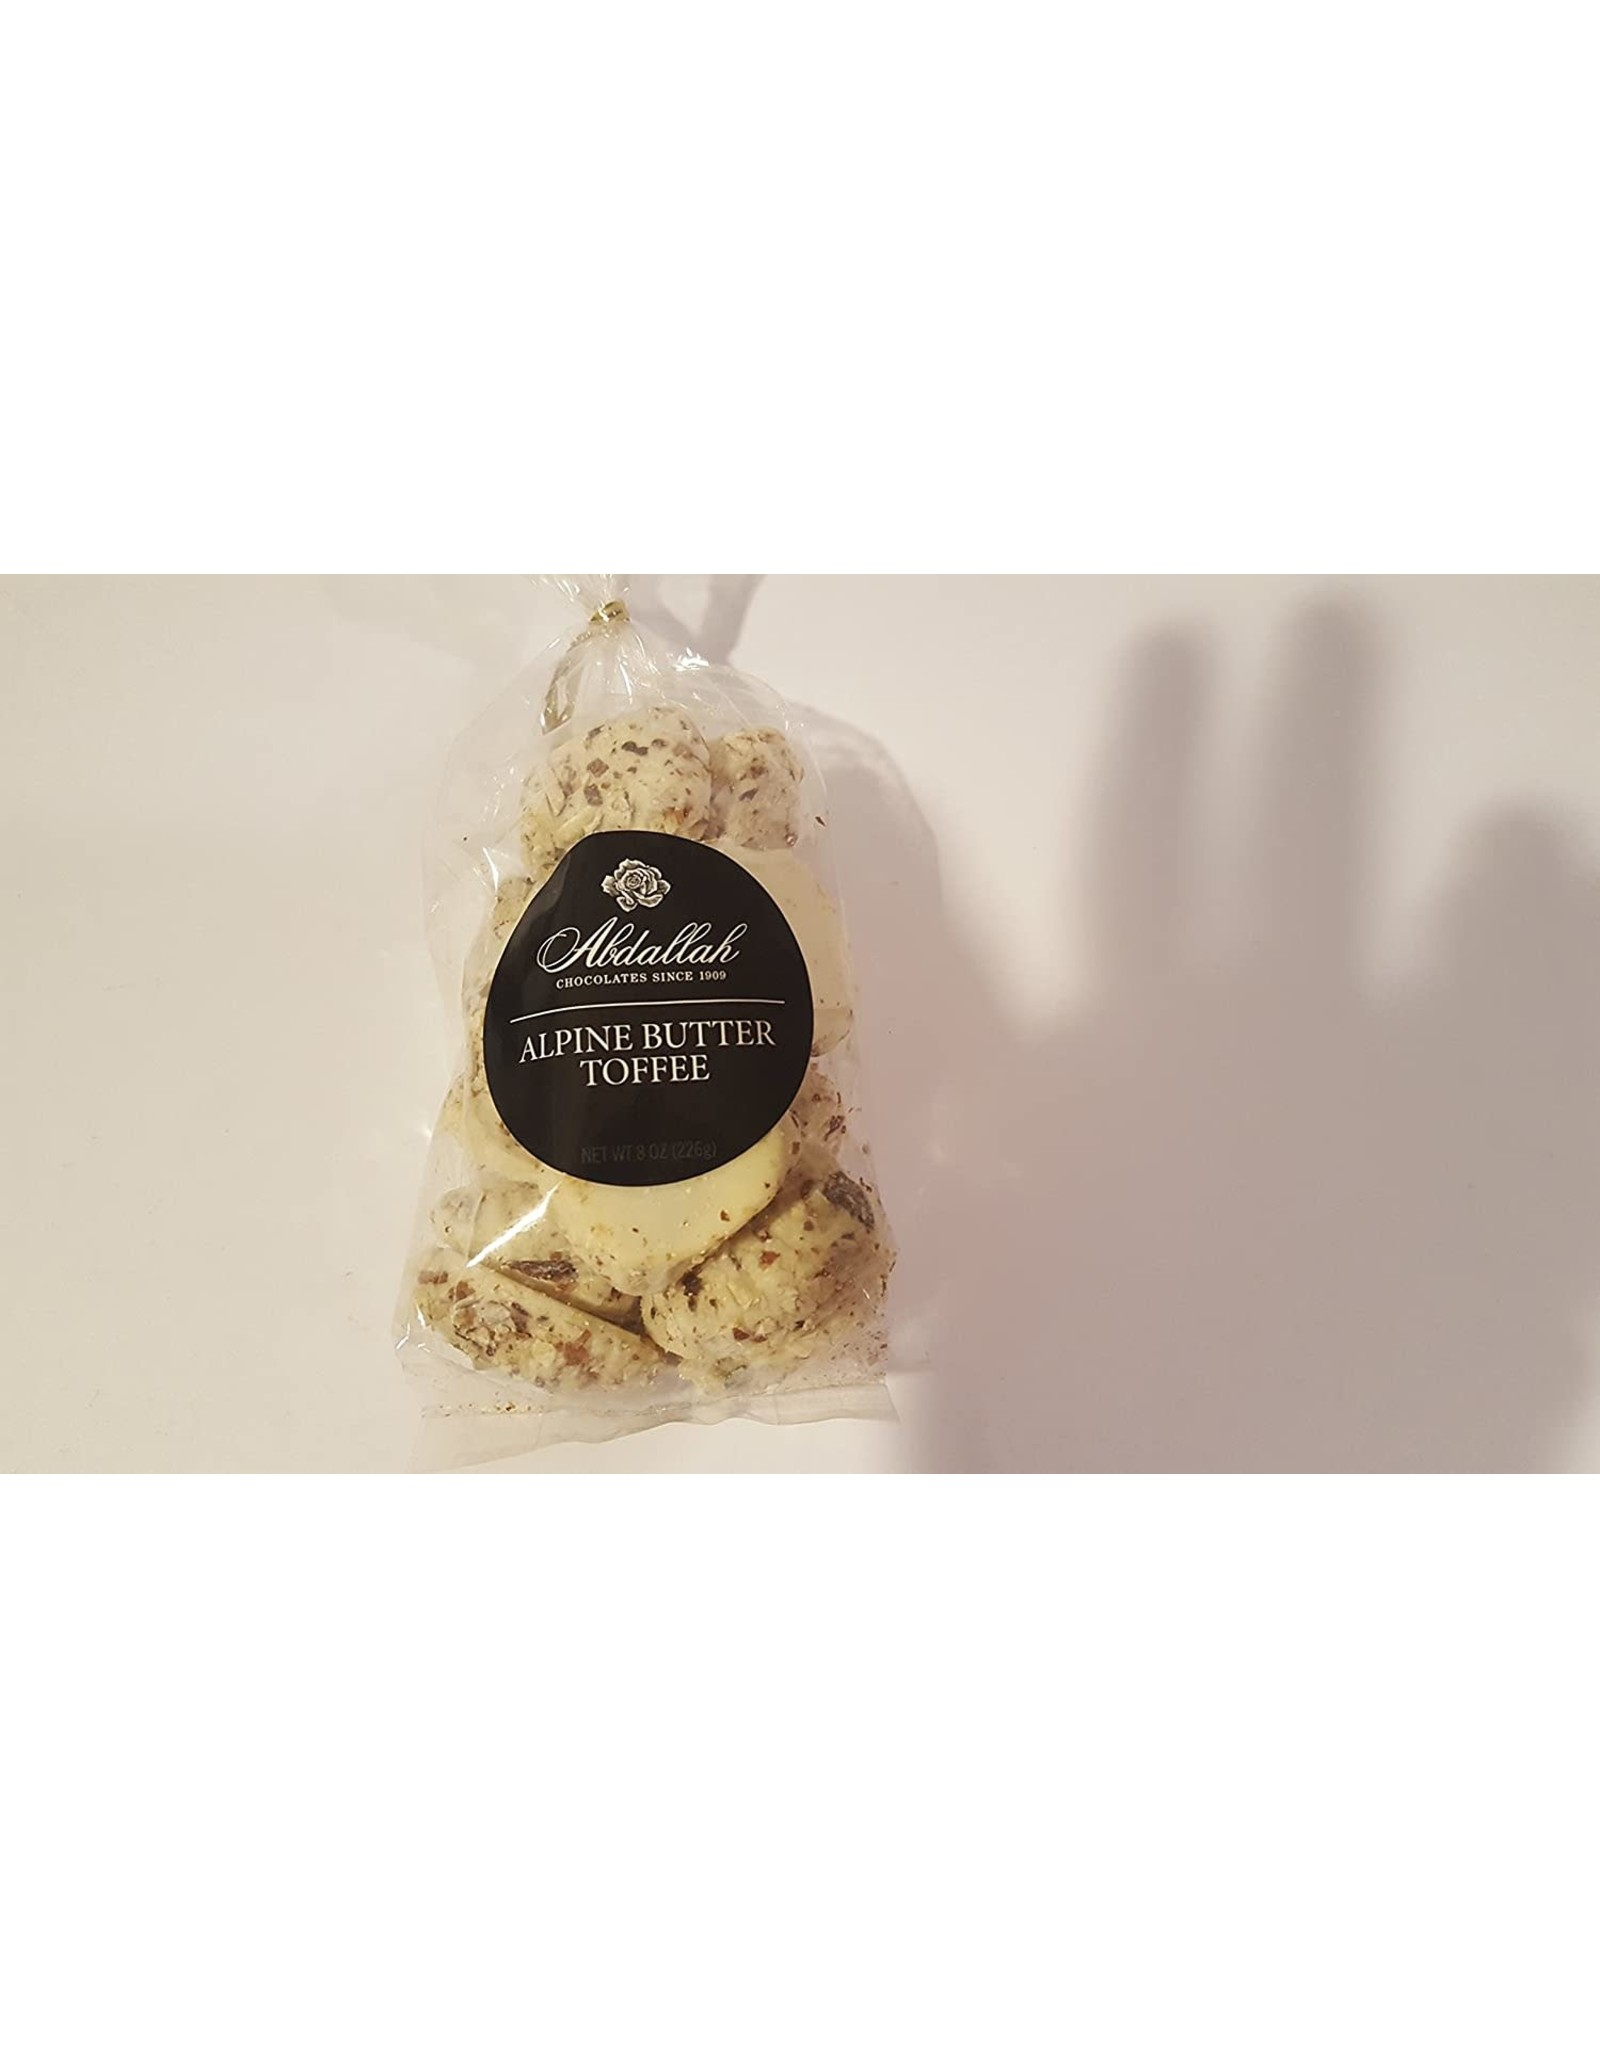 Abdallah Candy, Alpine Butter Toffee, 7oz